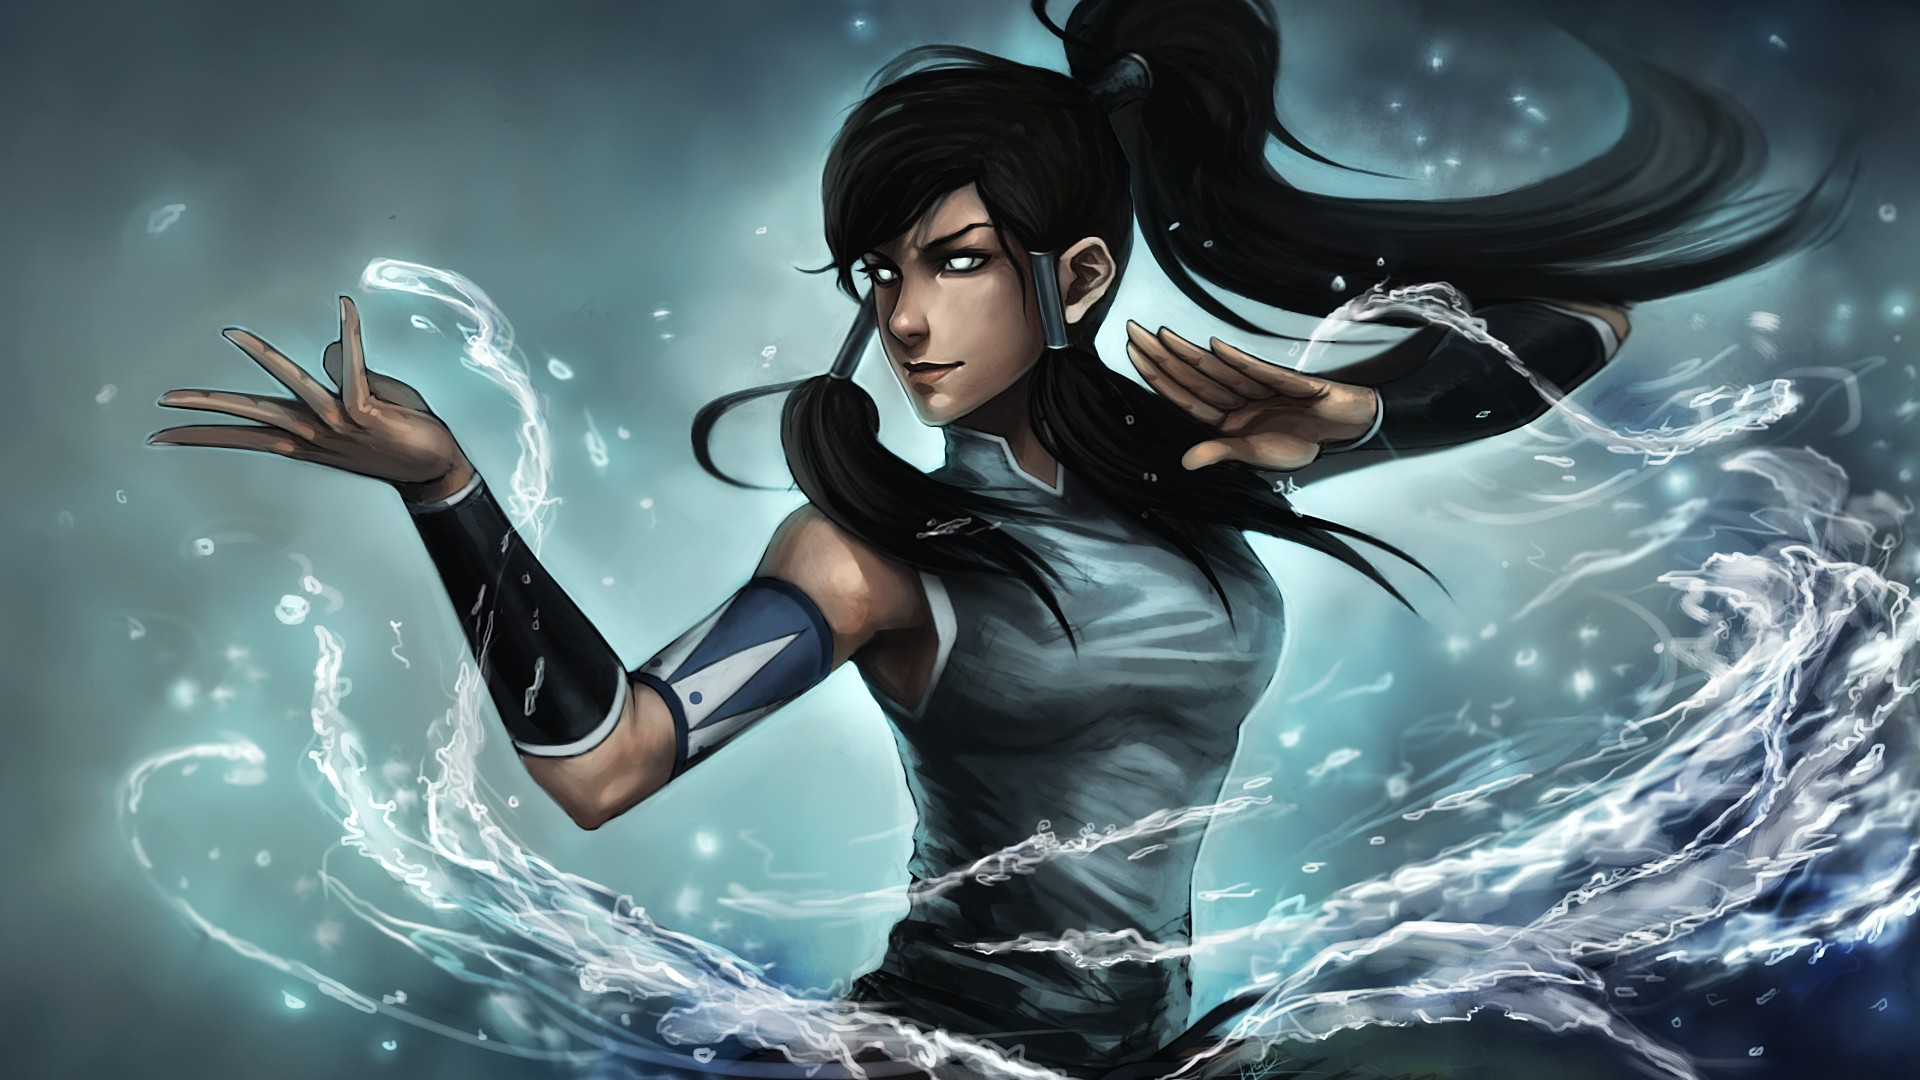 Avatar anime anime girls Waterbender korra Wallpapers 1920x1080